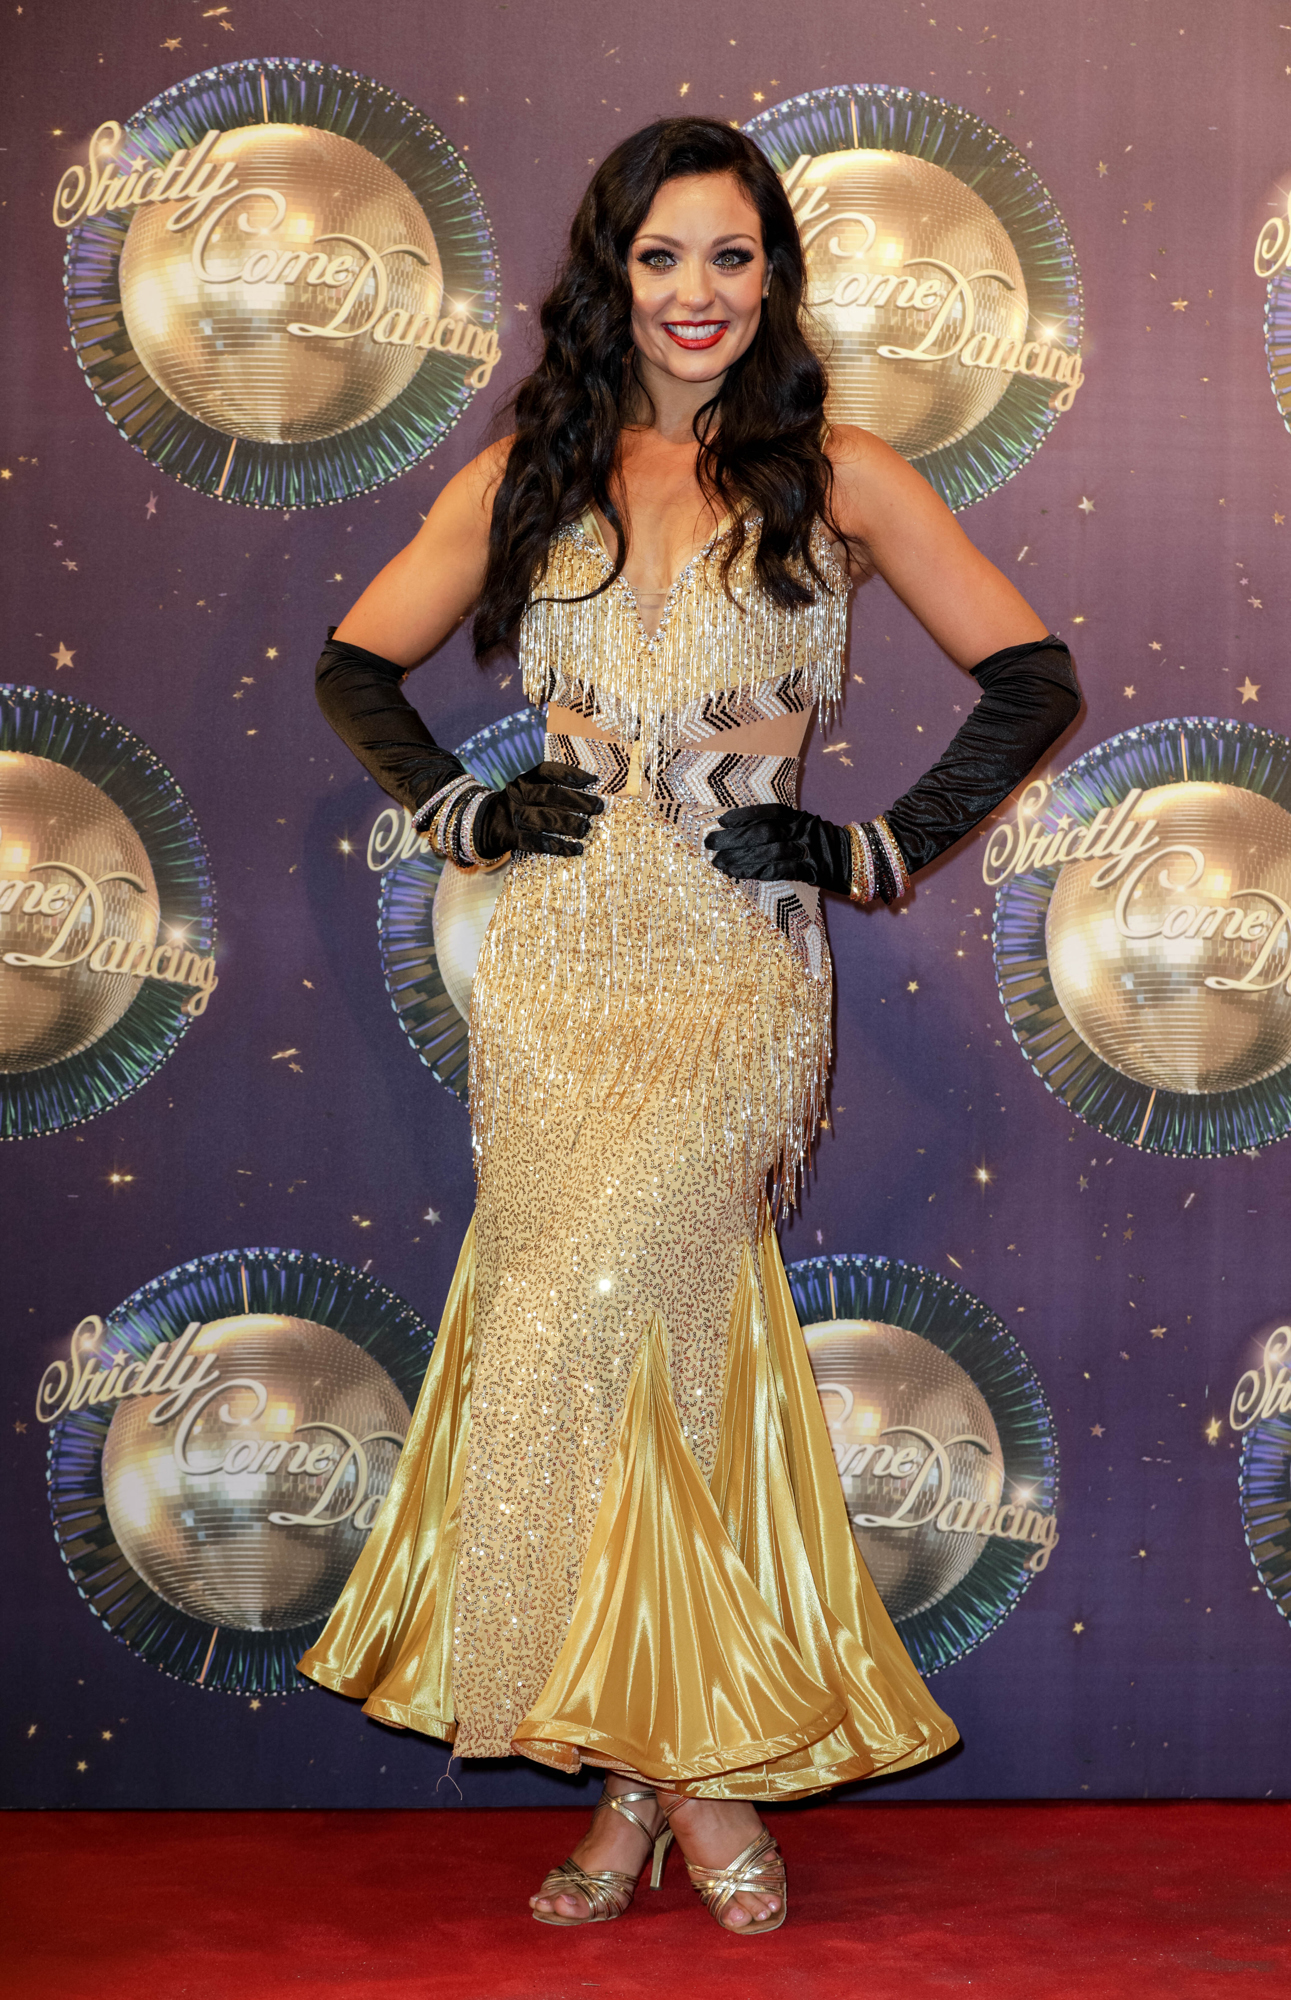 PHT_B5327_strictly_come_dancing_14101.JPG